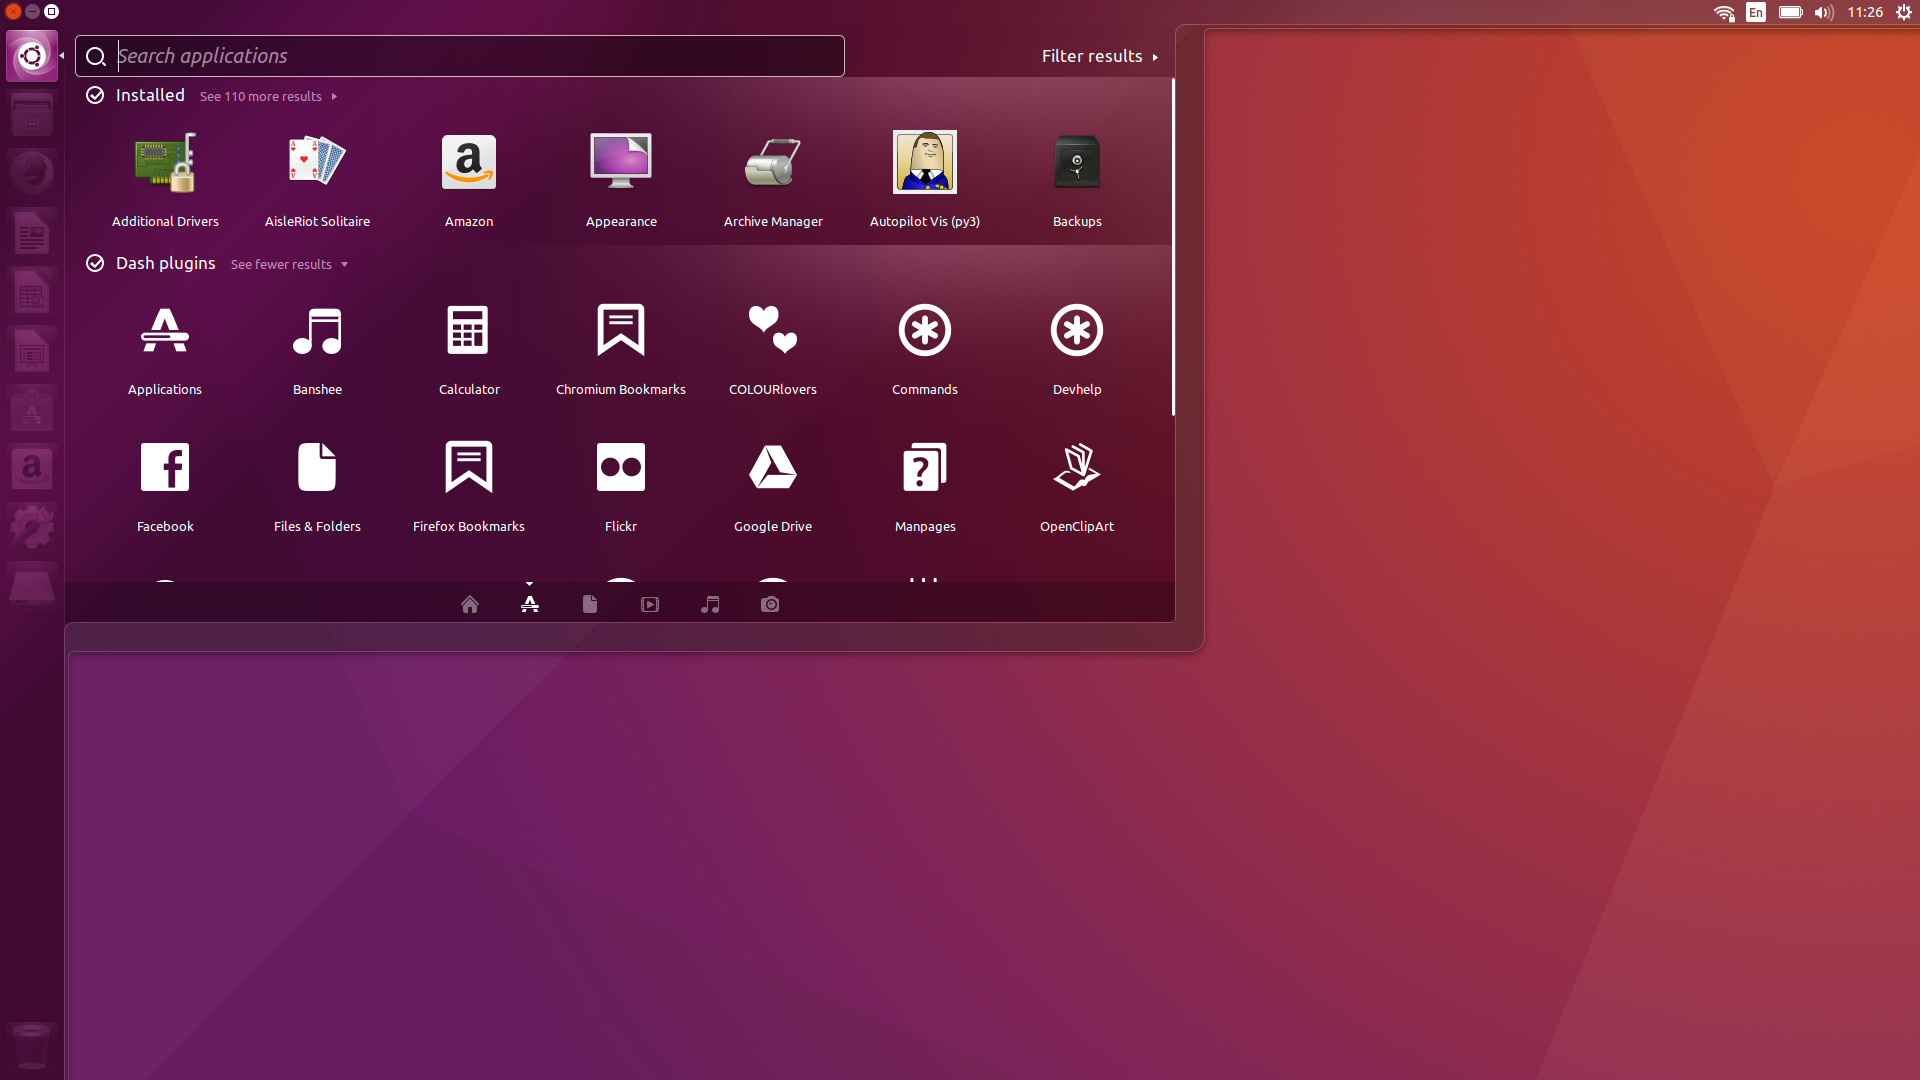 b4ff0d3c2b9 Ubuntu 16.04 LTS (Xenial Xerus) Is Now Available to Download ...